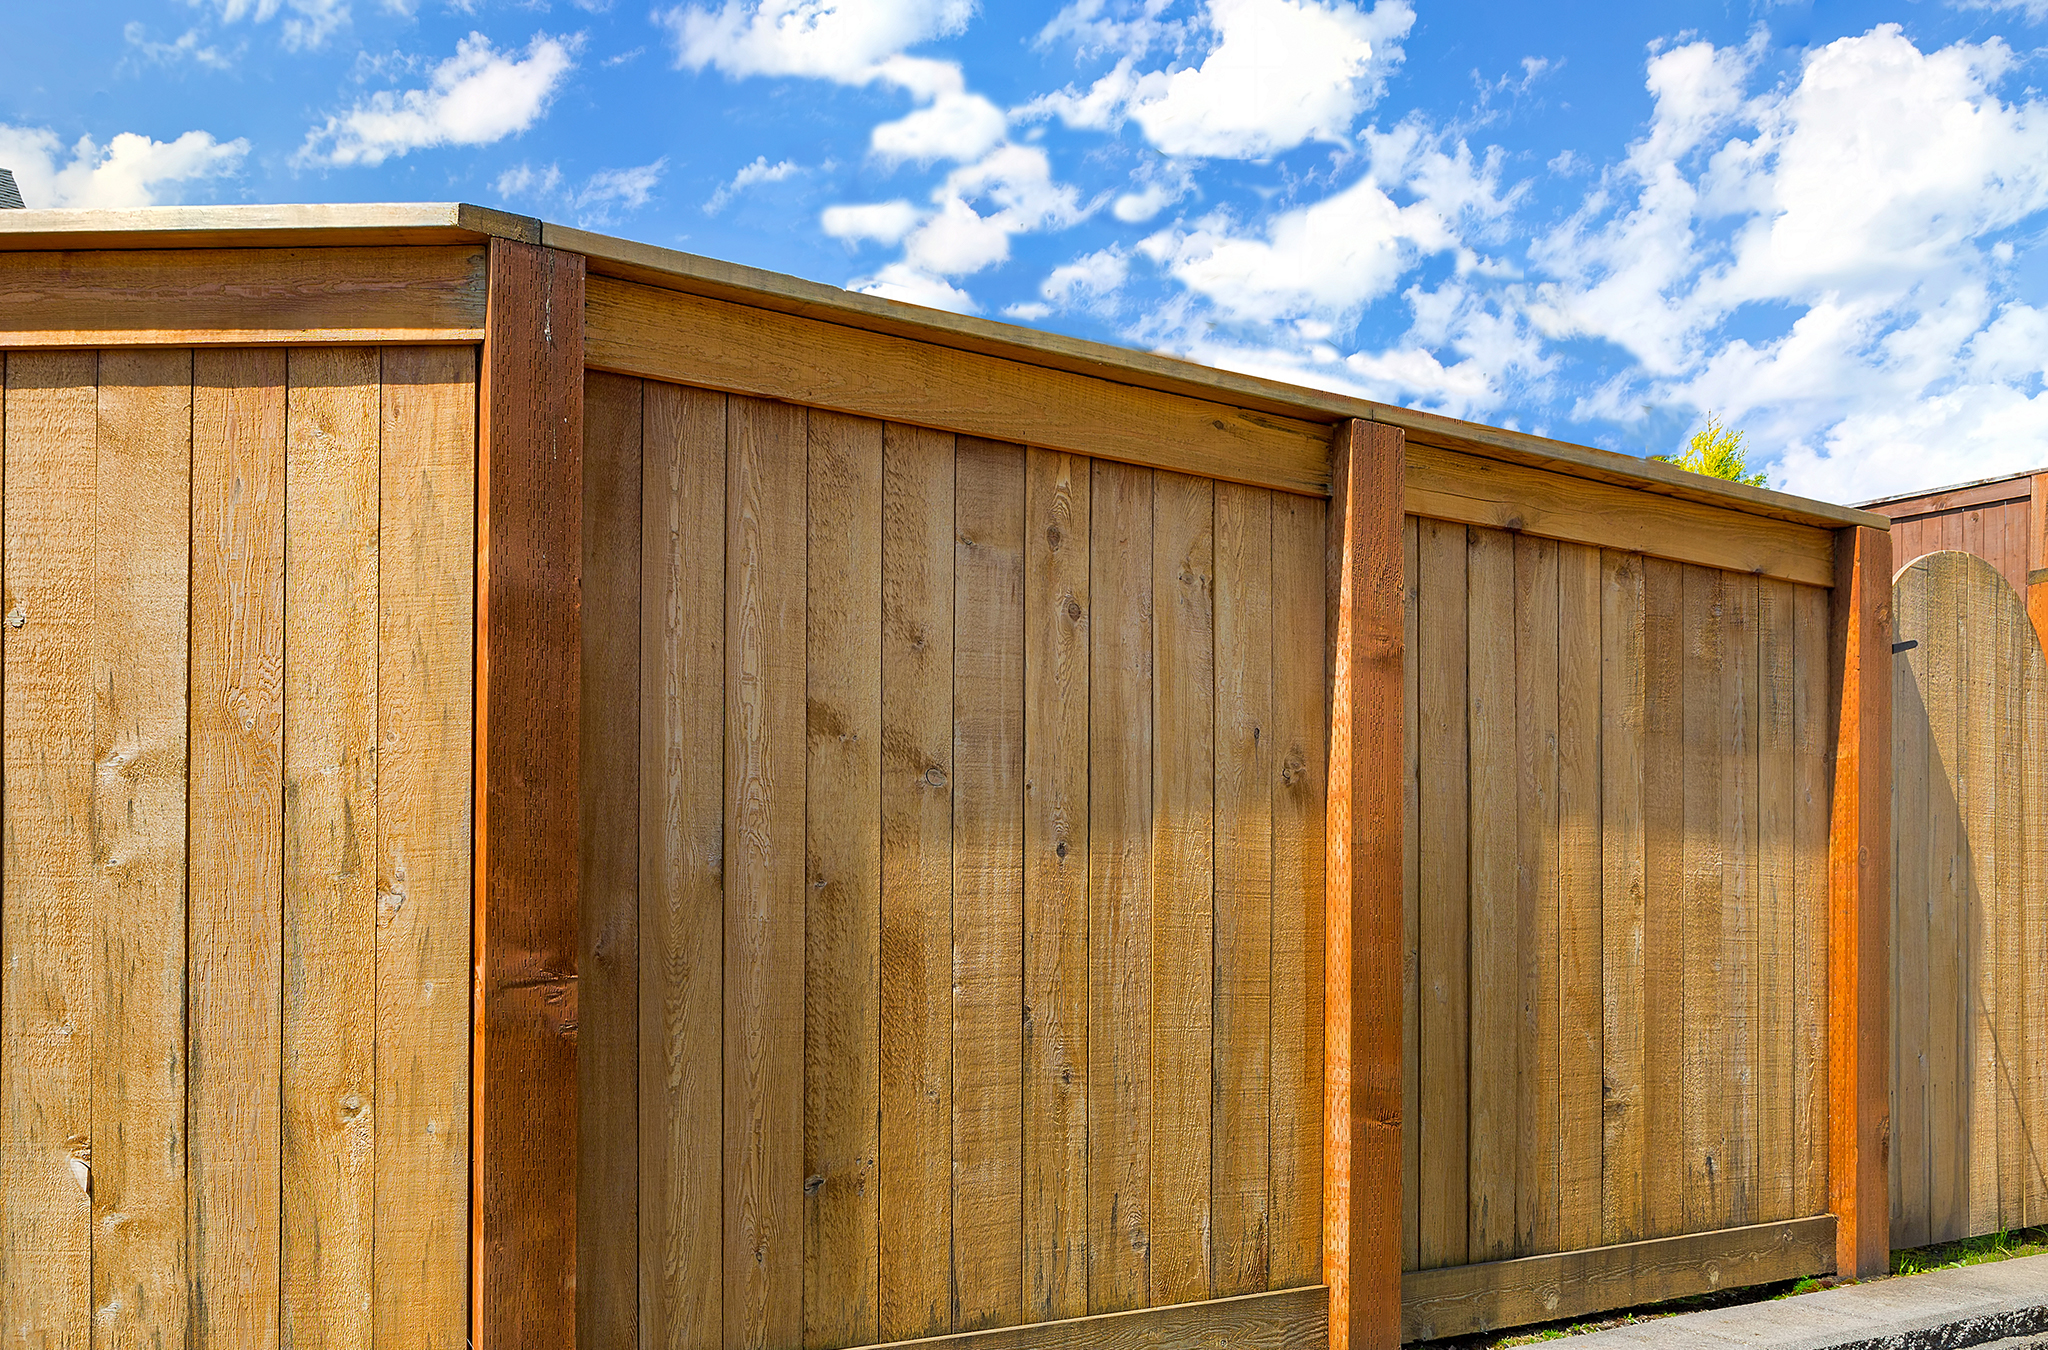 A new wooden fence.